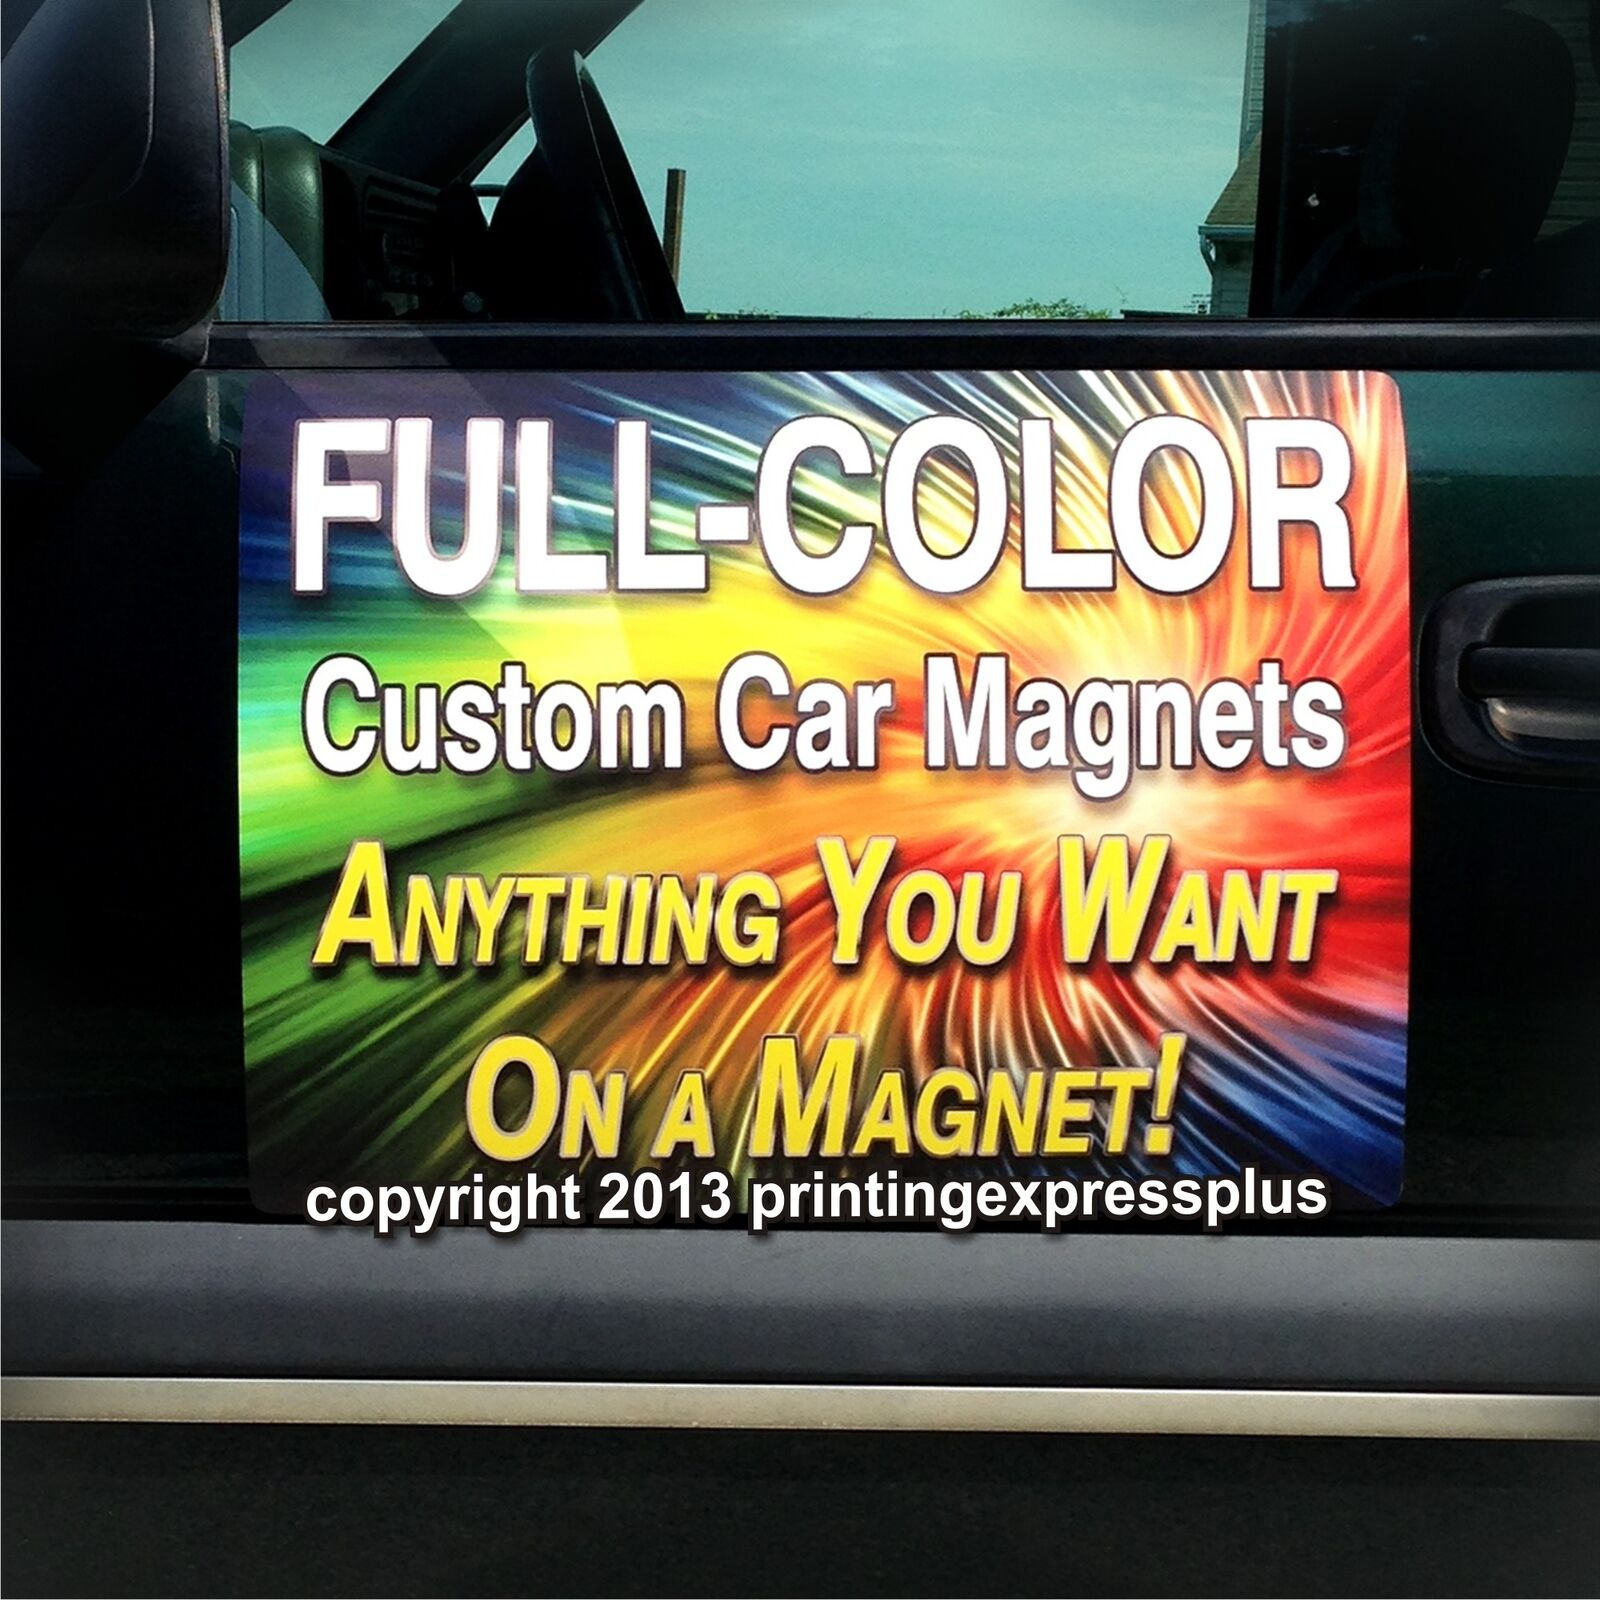 X Custom Car Magnets Magnetic Auto Truck Signs Design - Custom car magnet advertisingcustom car magnets car door advertising magnets